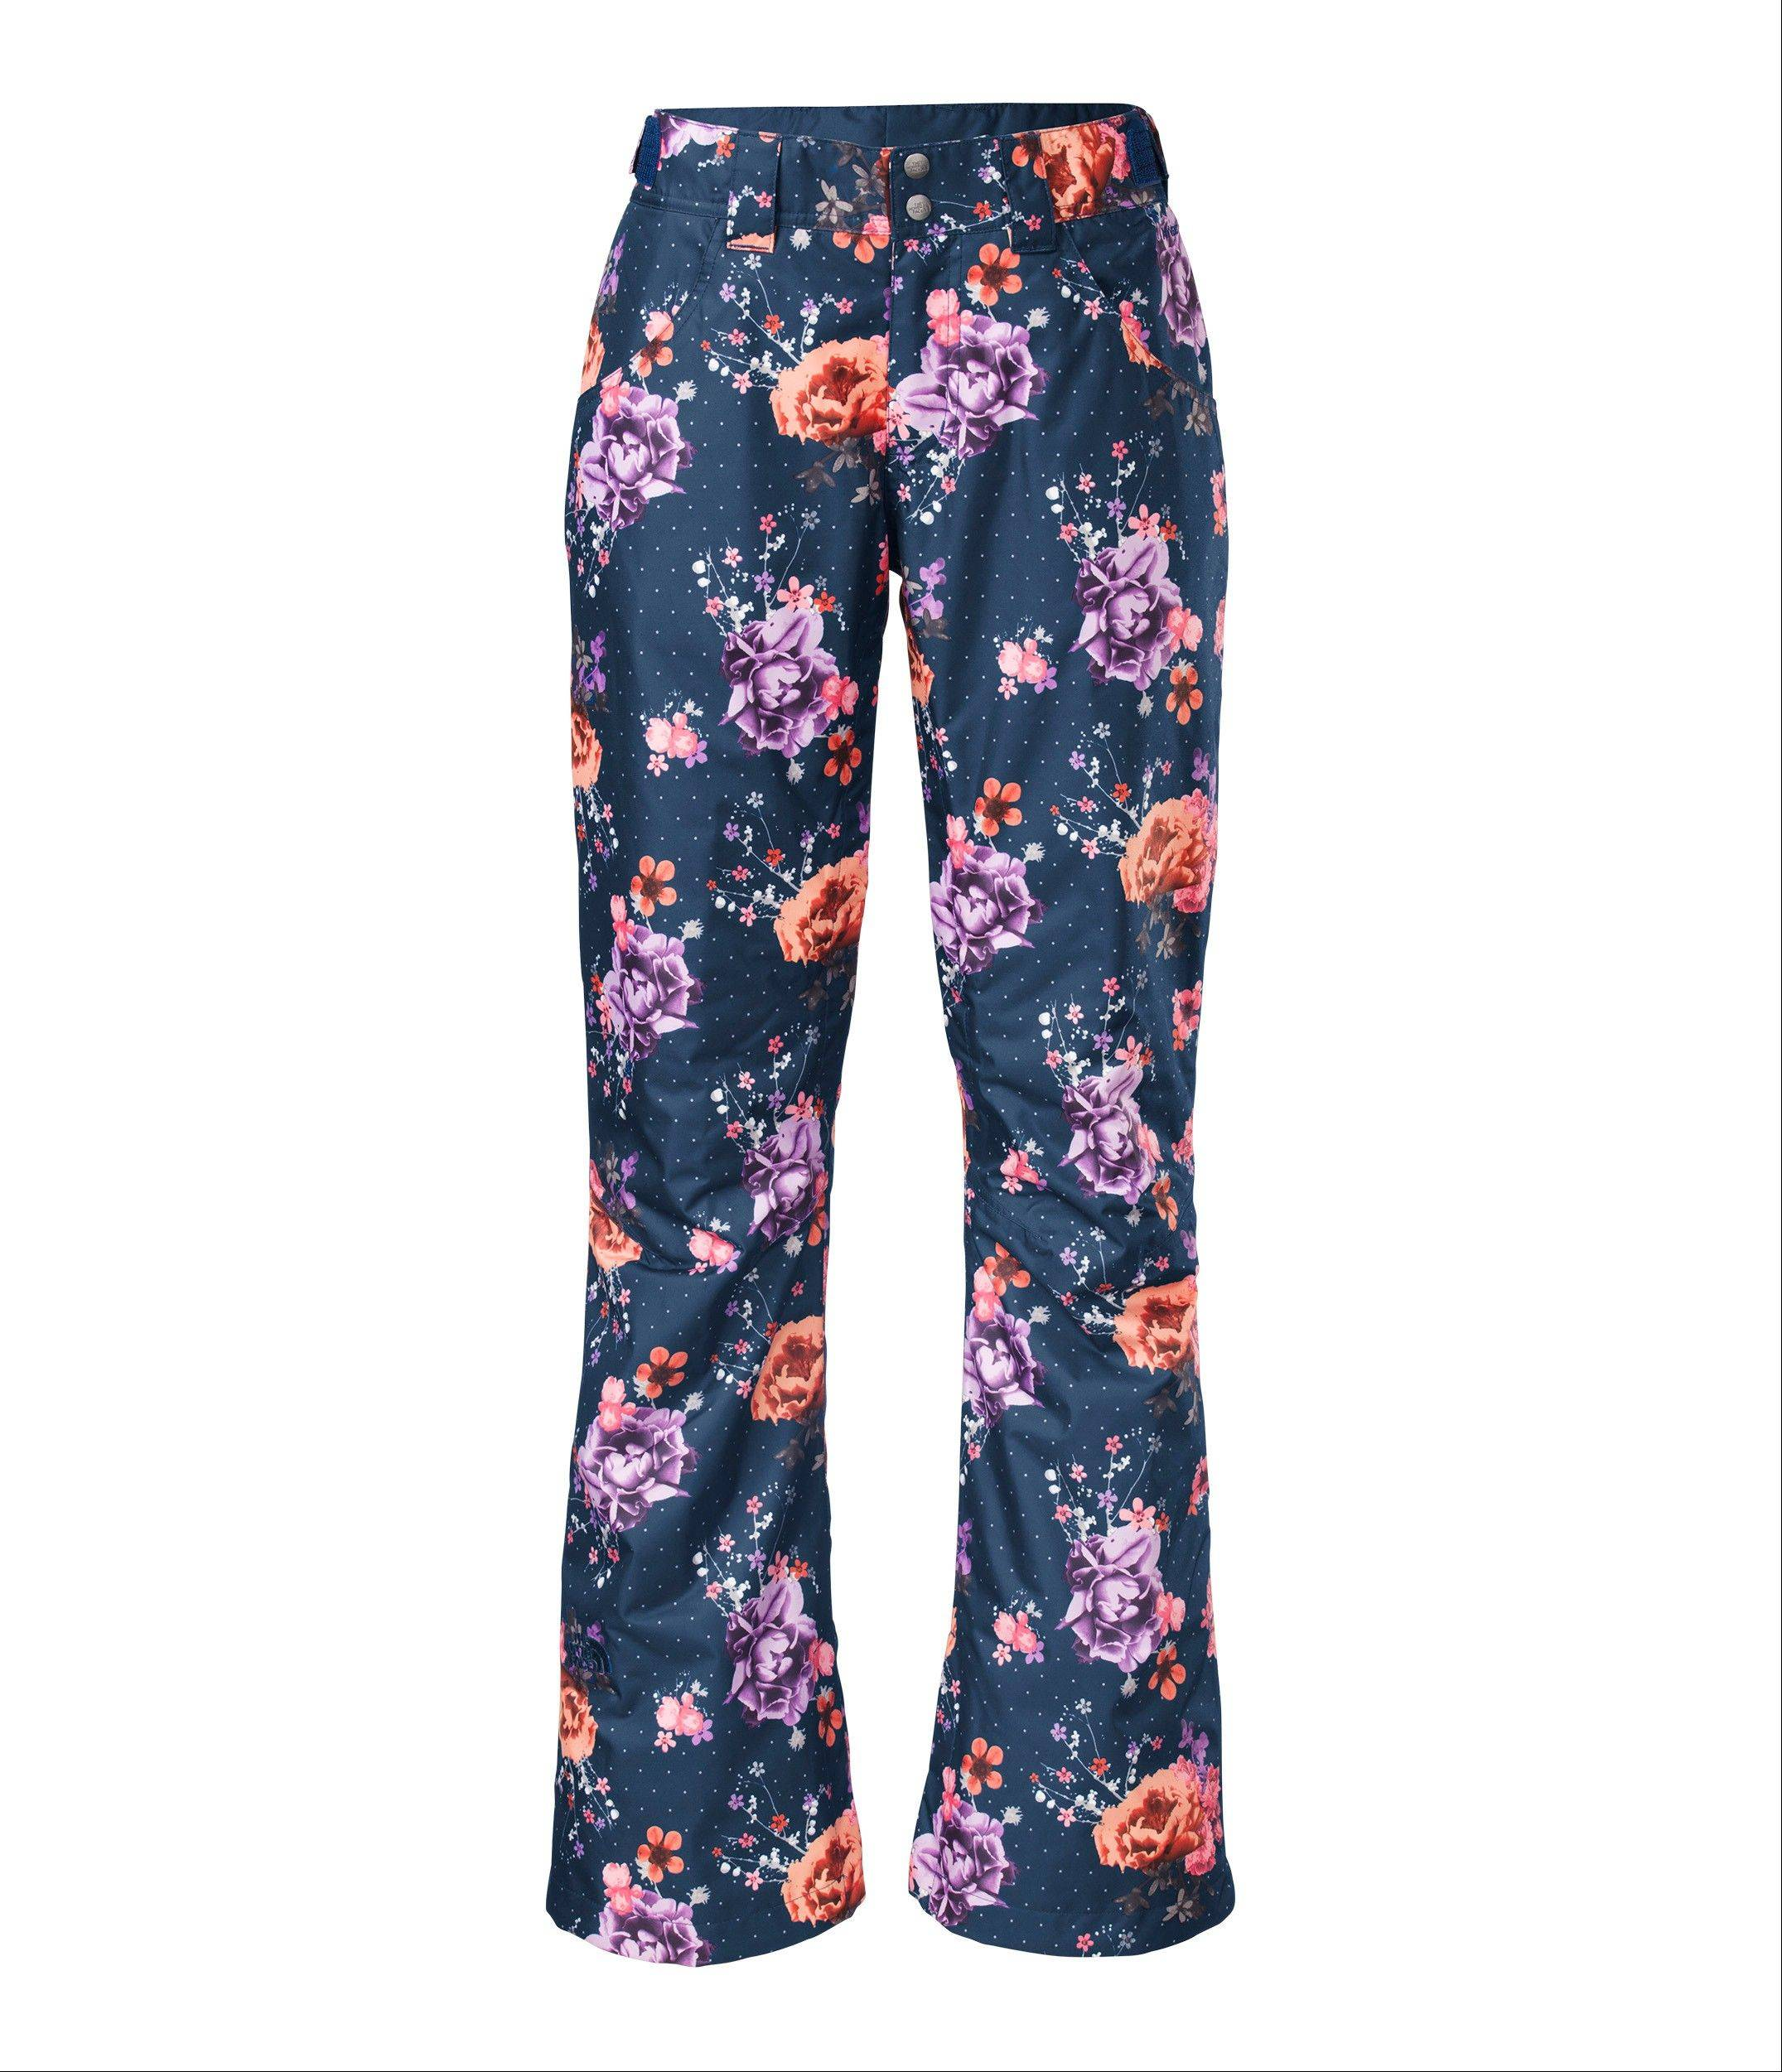 The North Face is selling women's farrows novelty pants in estate blue floral this season.